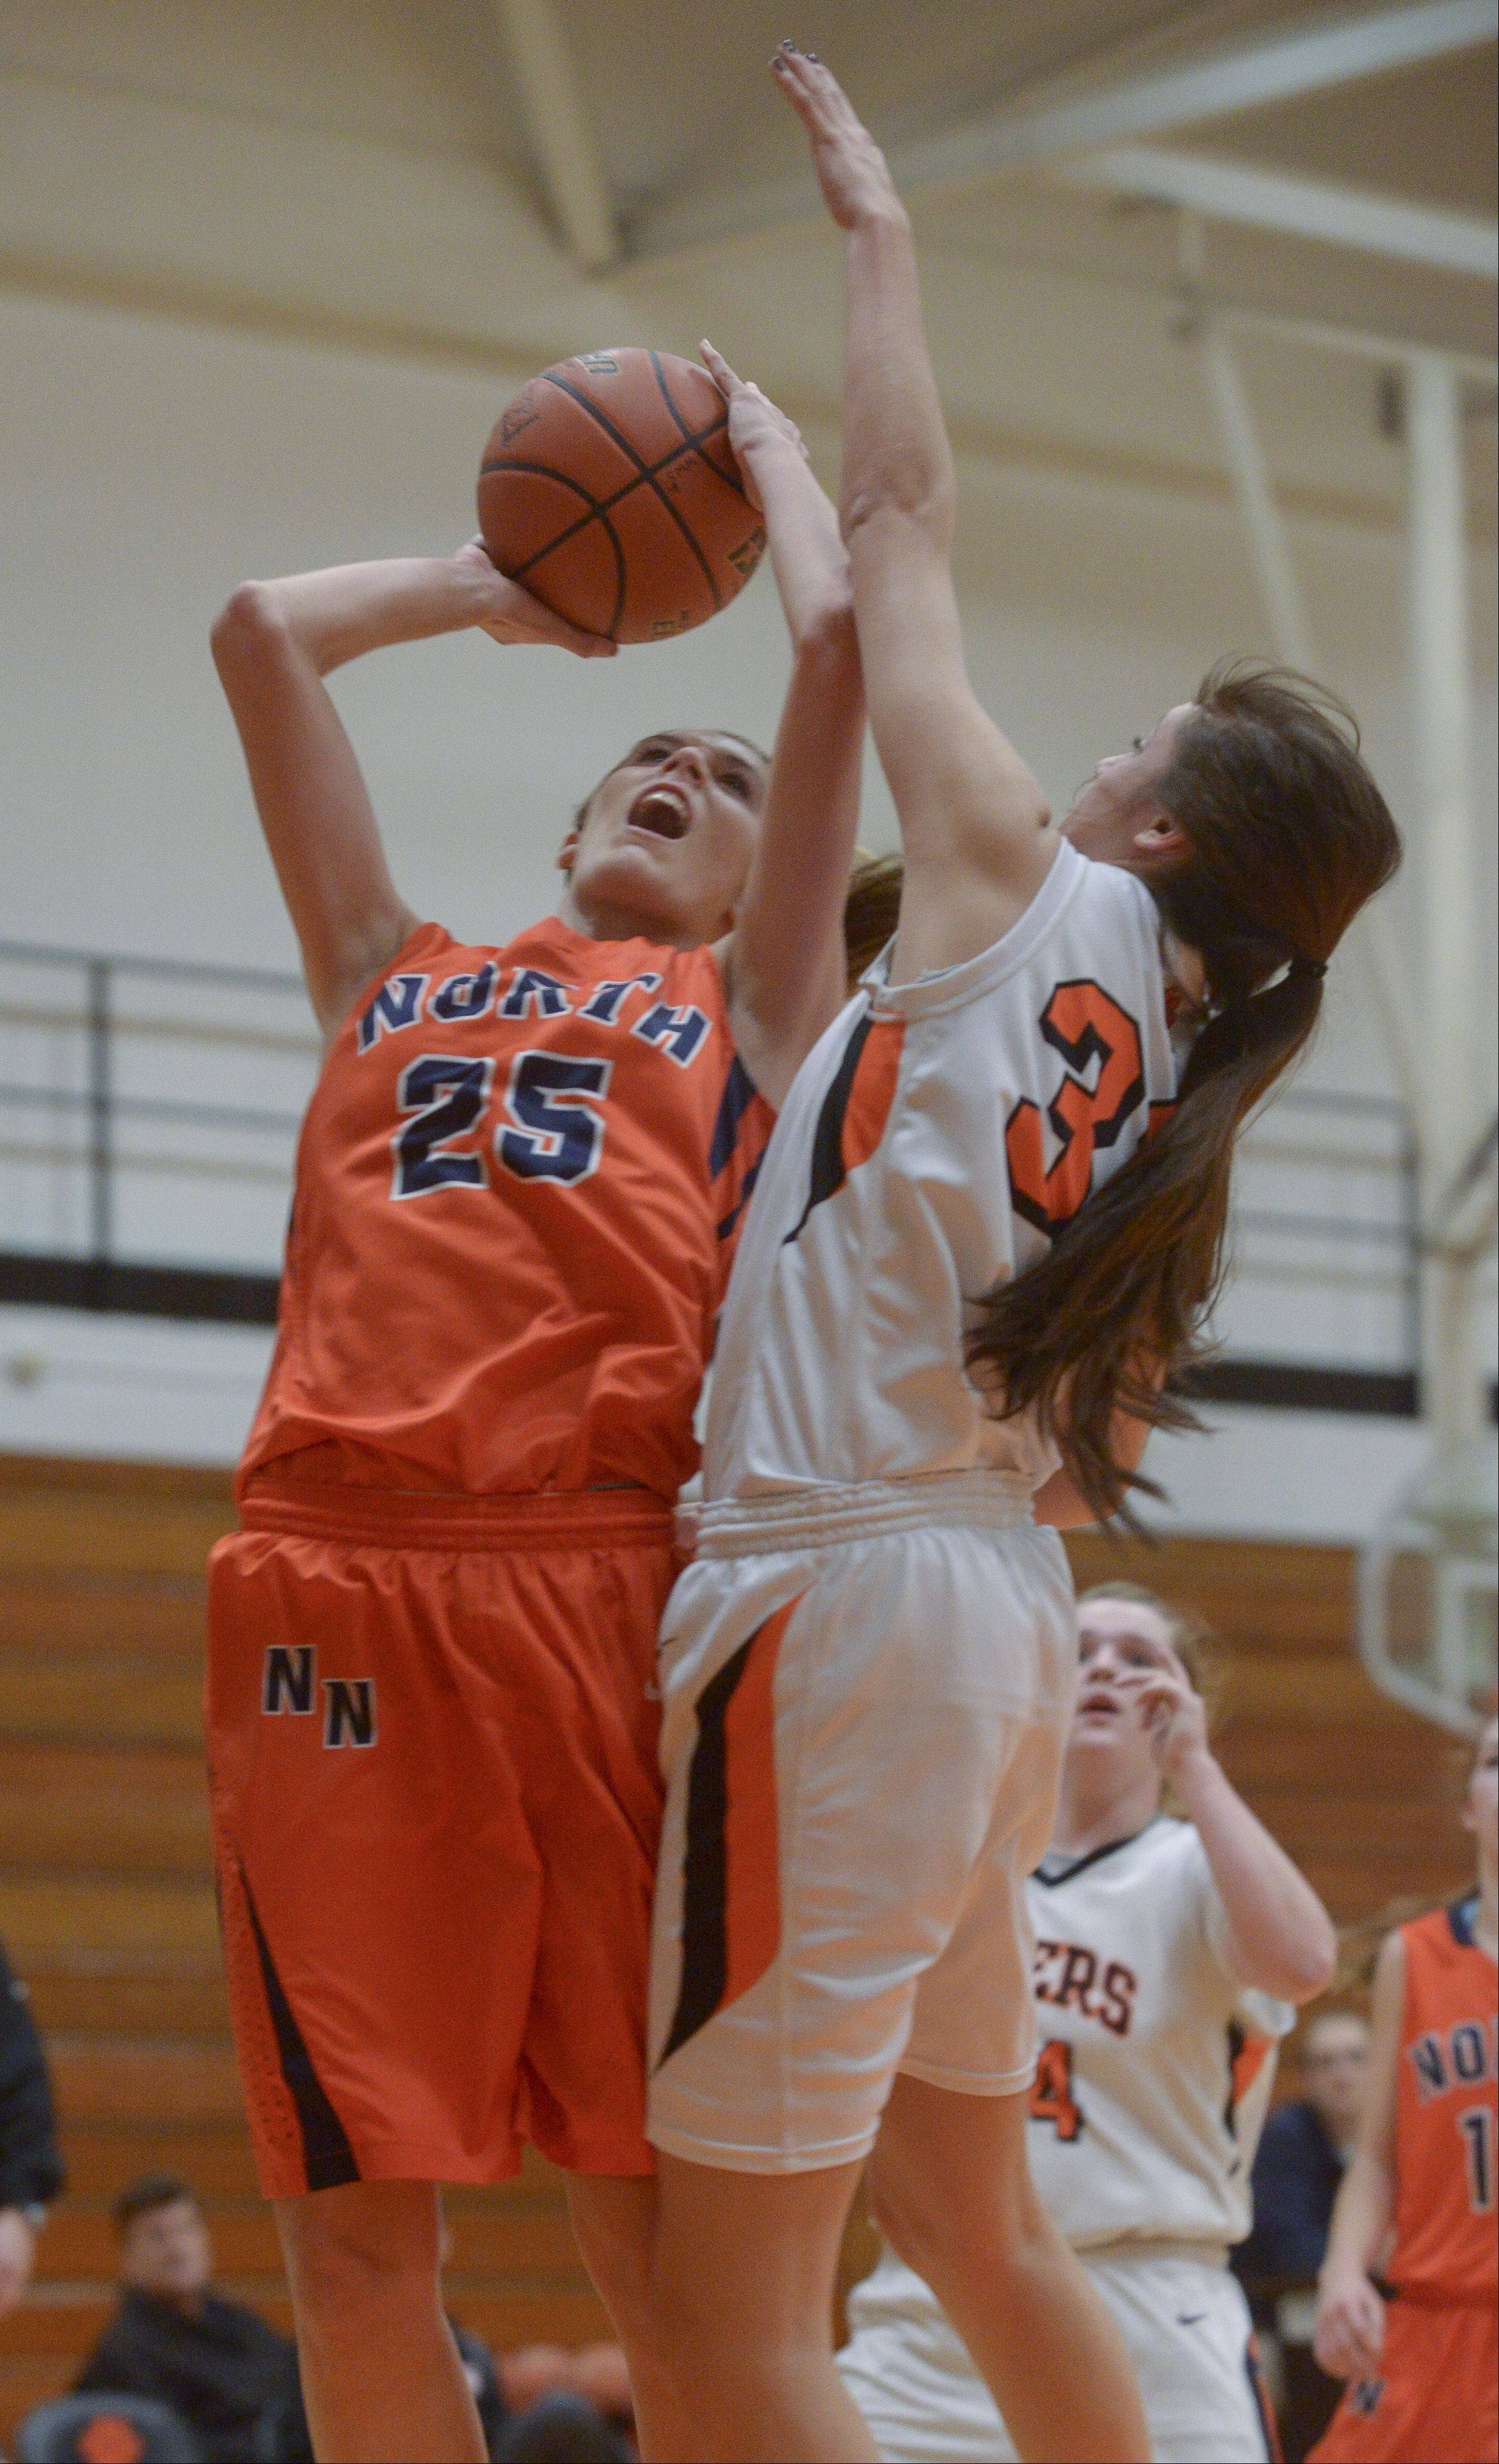 Naperville North's Kayla Sharples is fouled by Wheaton Warrenville South's Erin Zappia.